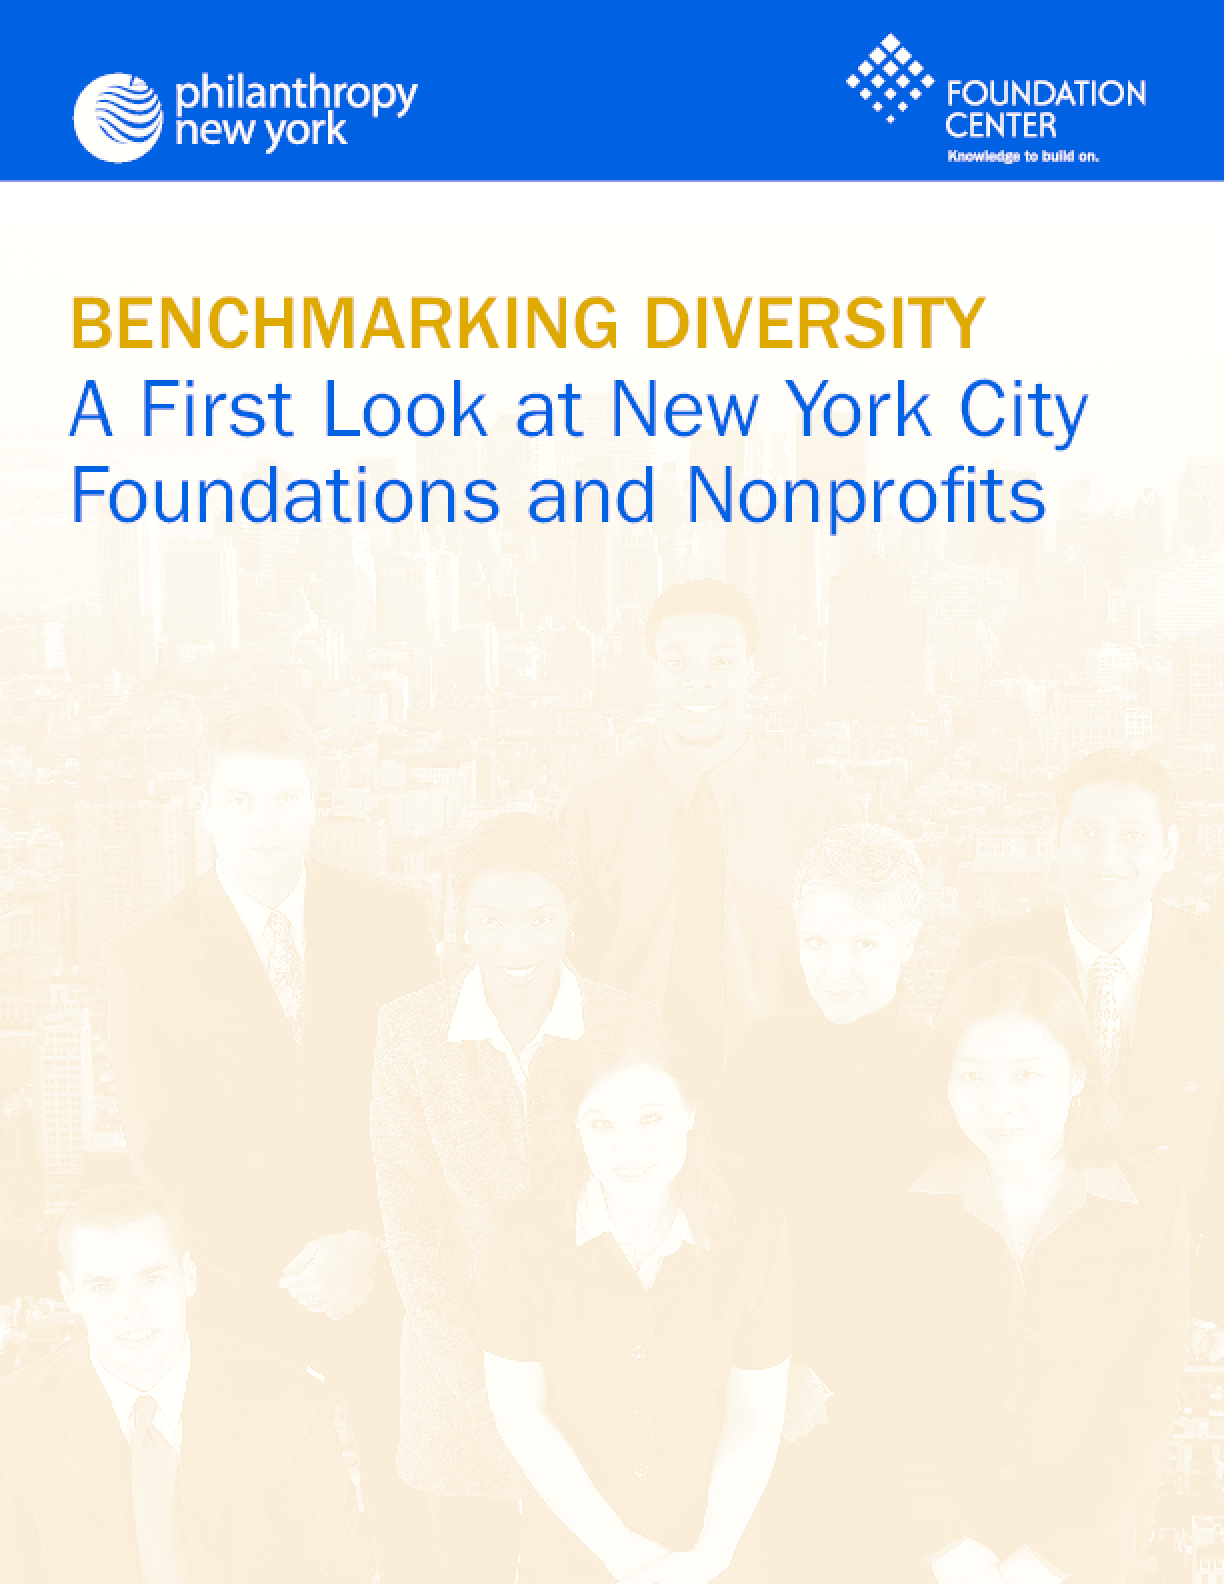 Benchmarking Diversity: A First Look at New York City Foundations and Nonprofits